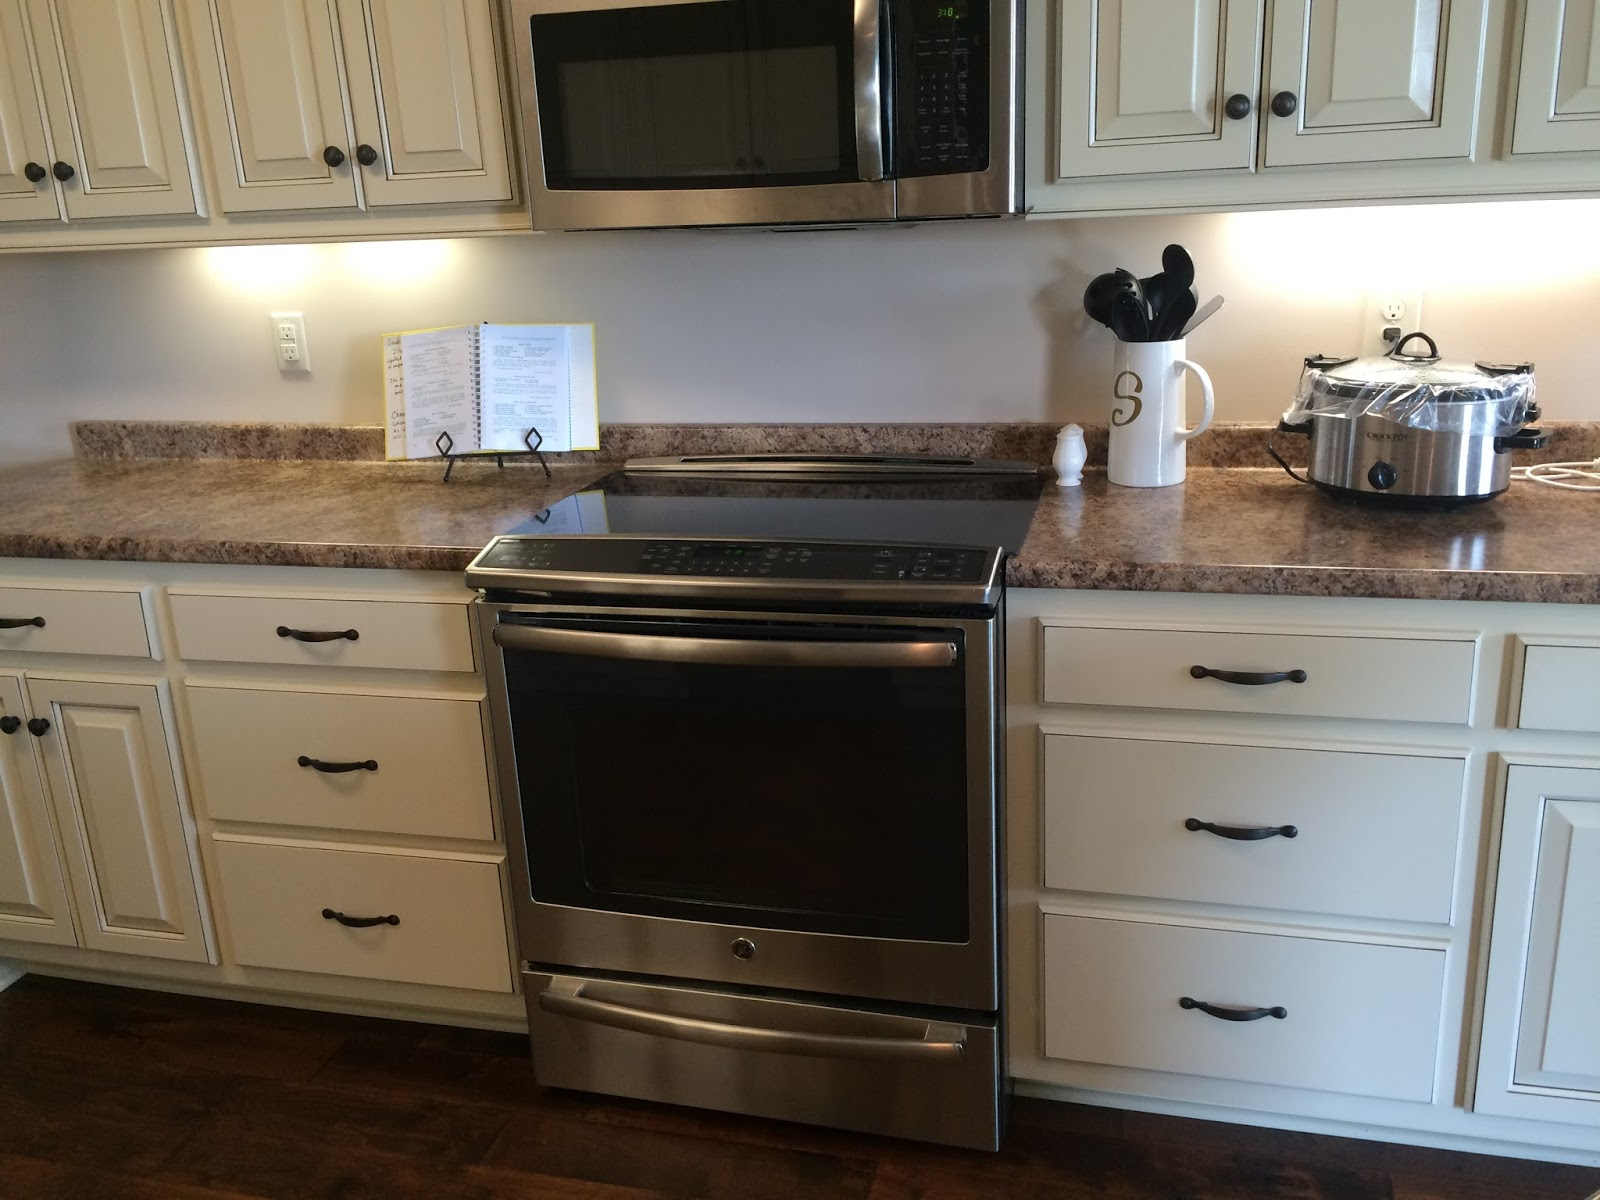 Warming drawer meaning oven your standard oven with four for What is the bottom drawer of an oven for